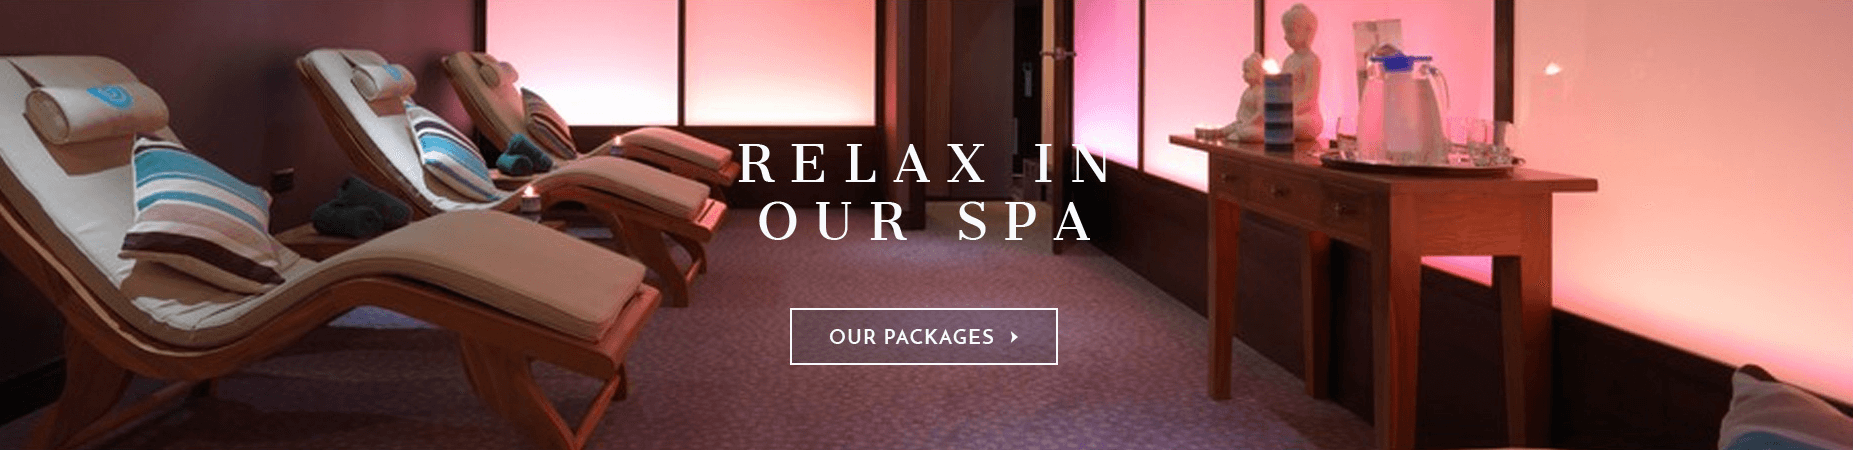 Relax in our Spa - Our Packages